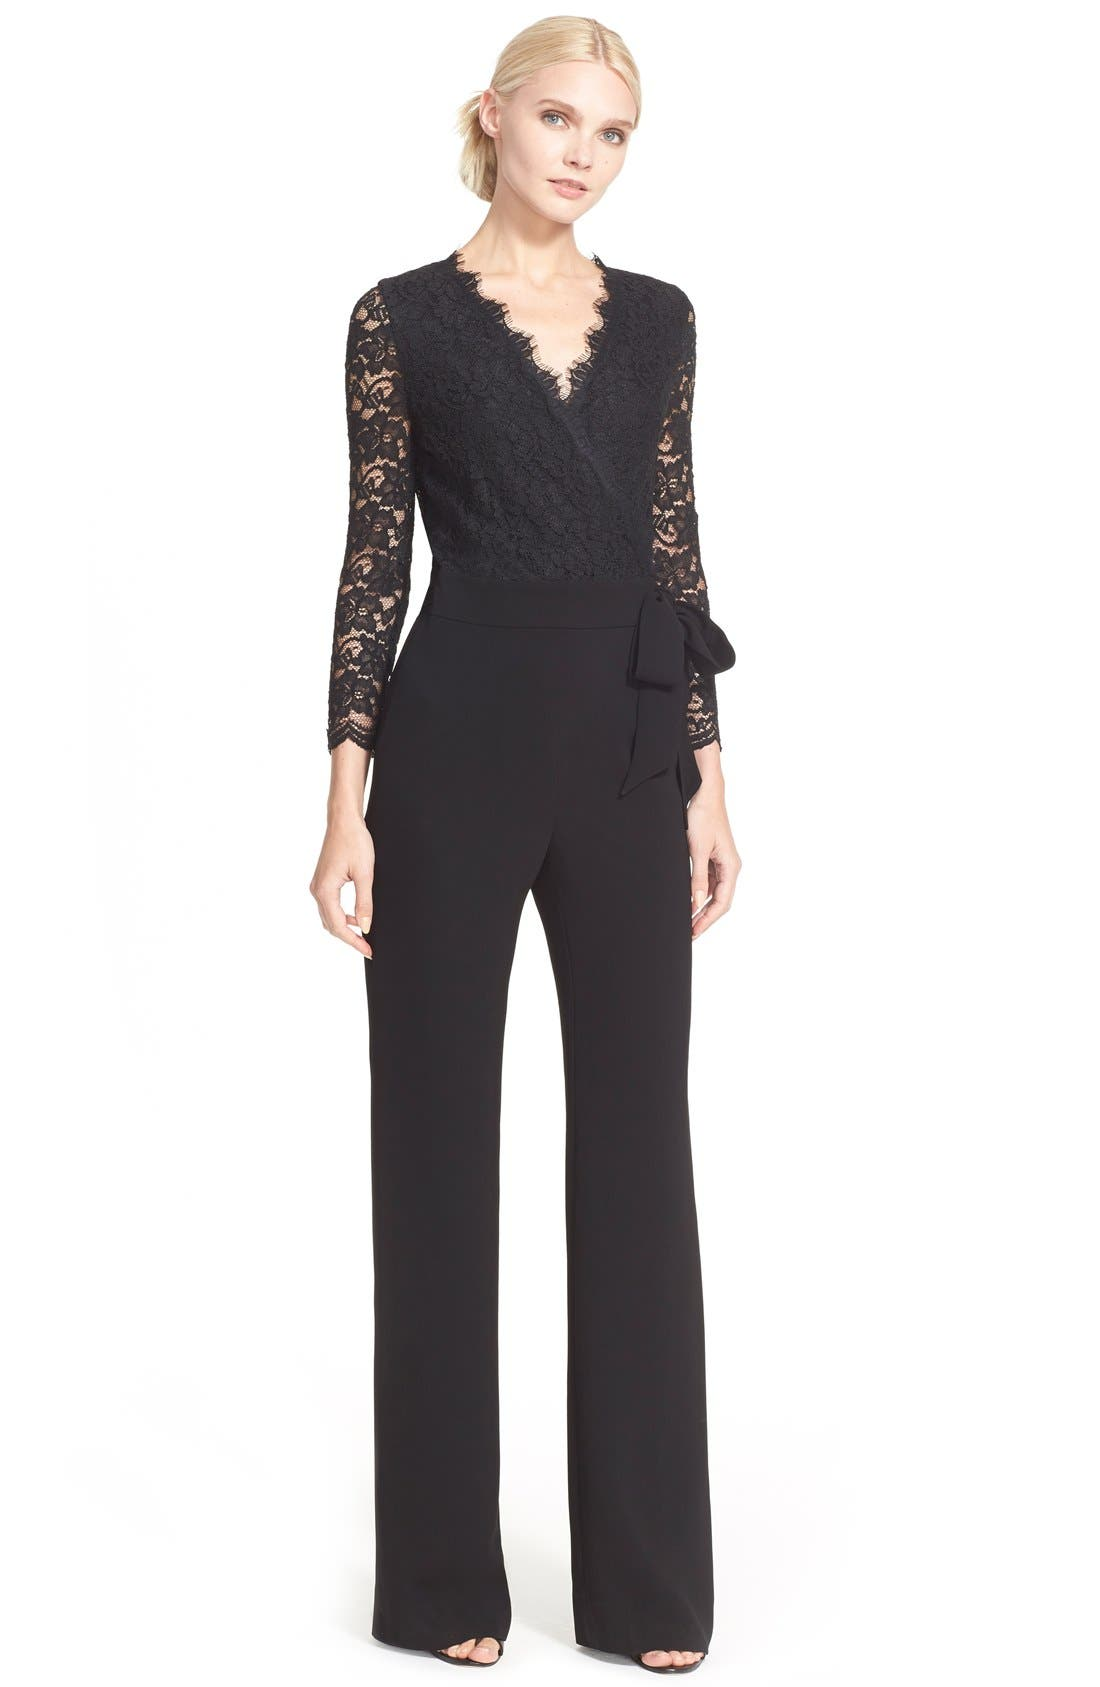 Alternate Image 1 Selected - Diane von Furstenberg 'Marlowe' Lace Jumpsuit